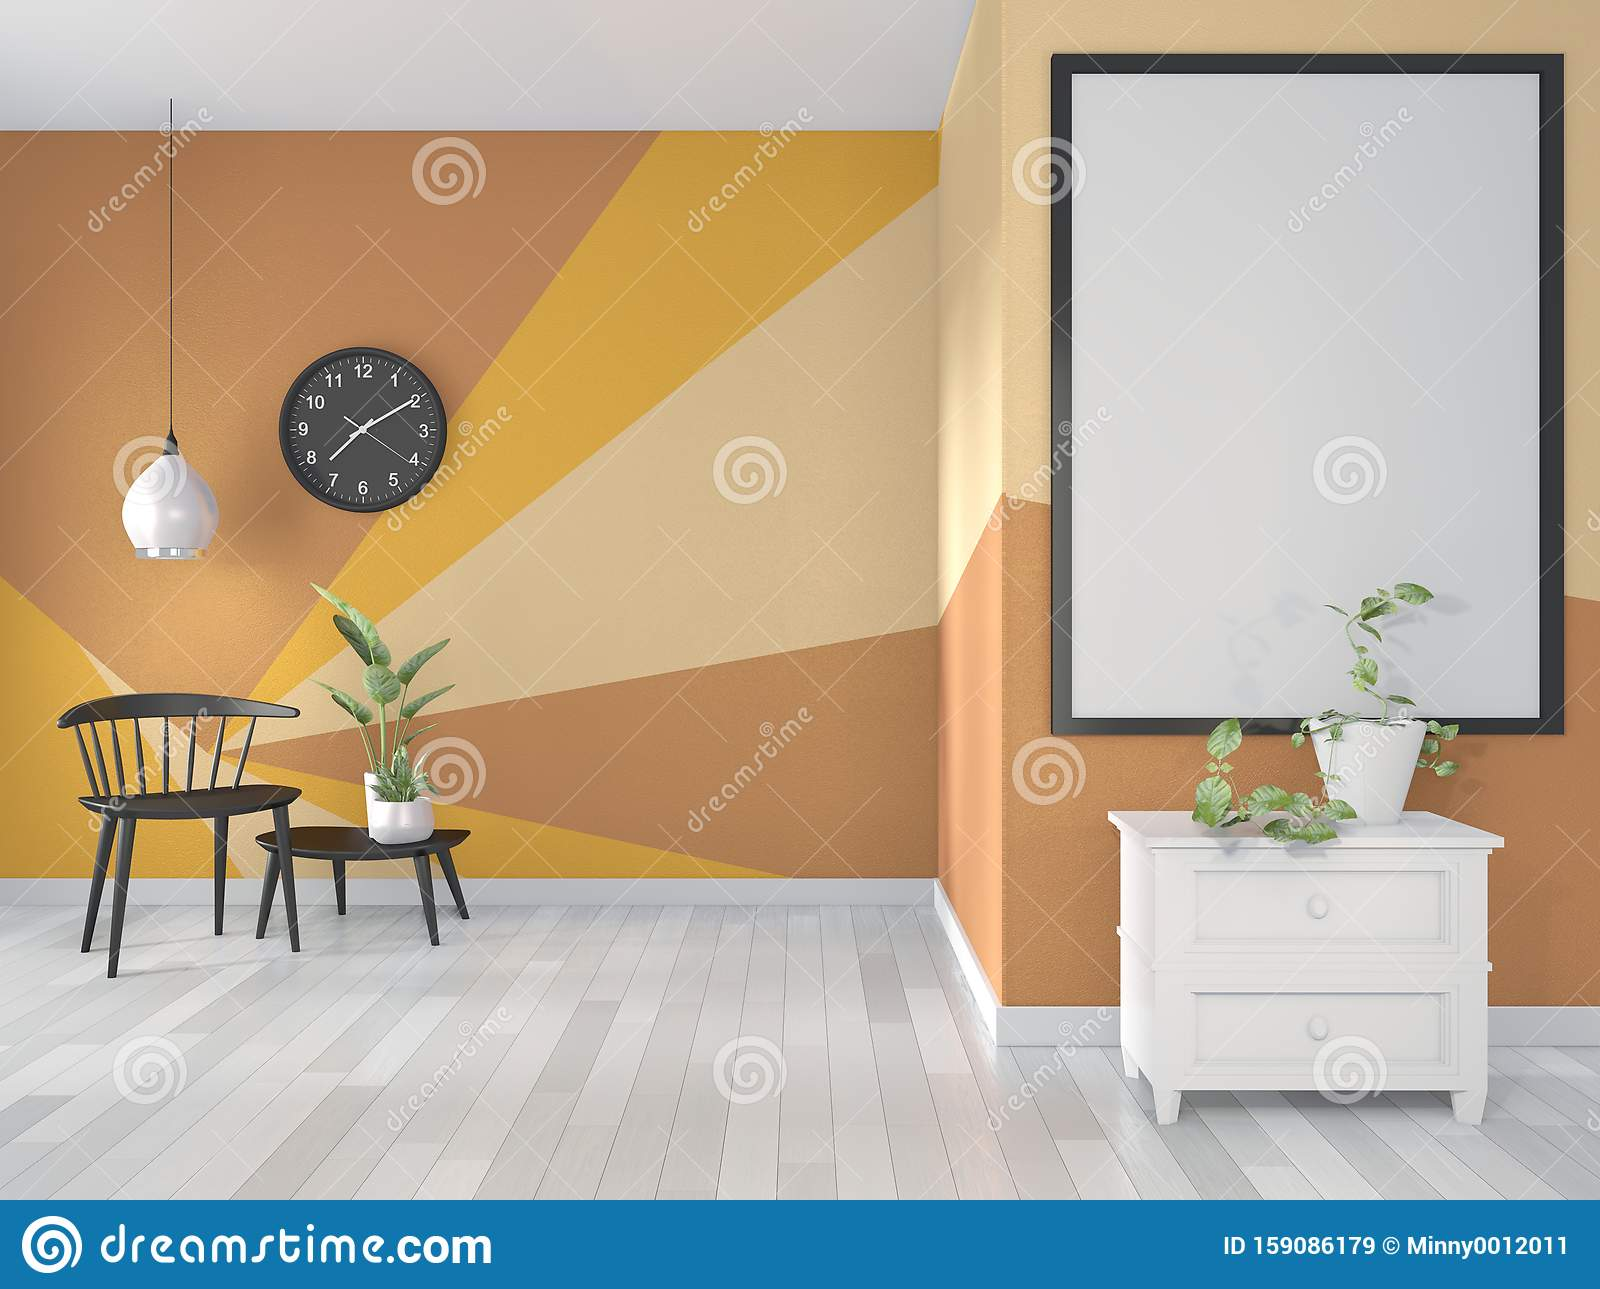 Mock Up Ideas Of Yellow And Orange Room Geometric Wall Art Paint Design Color Full Style On Wooden Floor 3d Rendering Stock Illustration Illustration Of House Concept 159086179